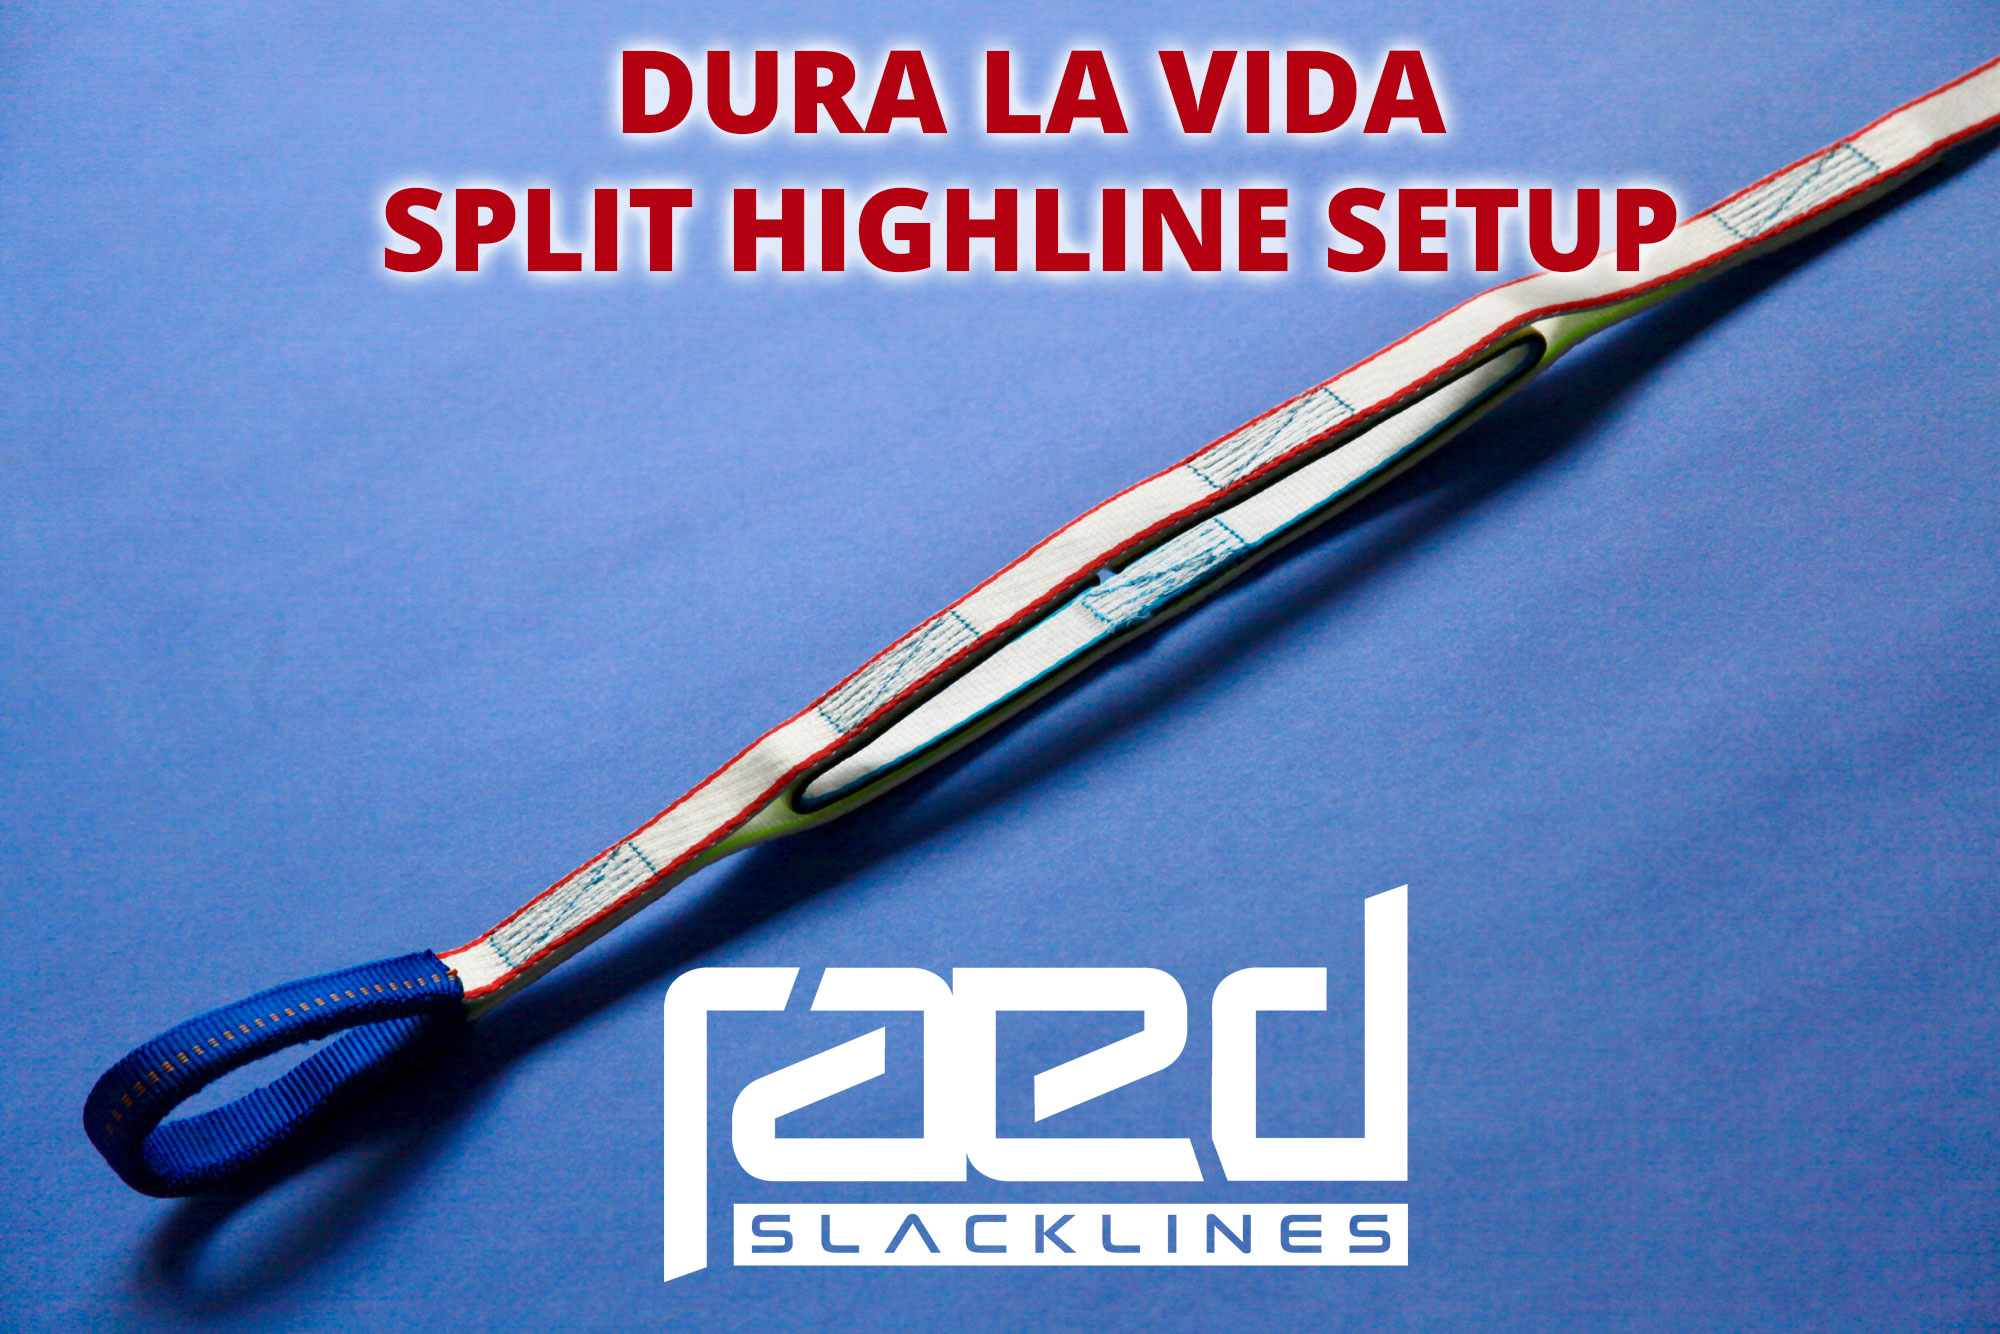 DuraLaVida: A split highline design from raed slacklines